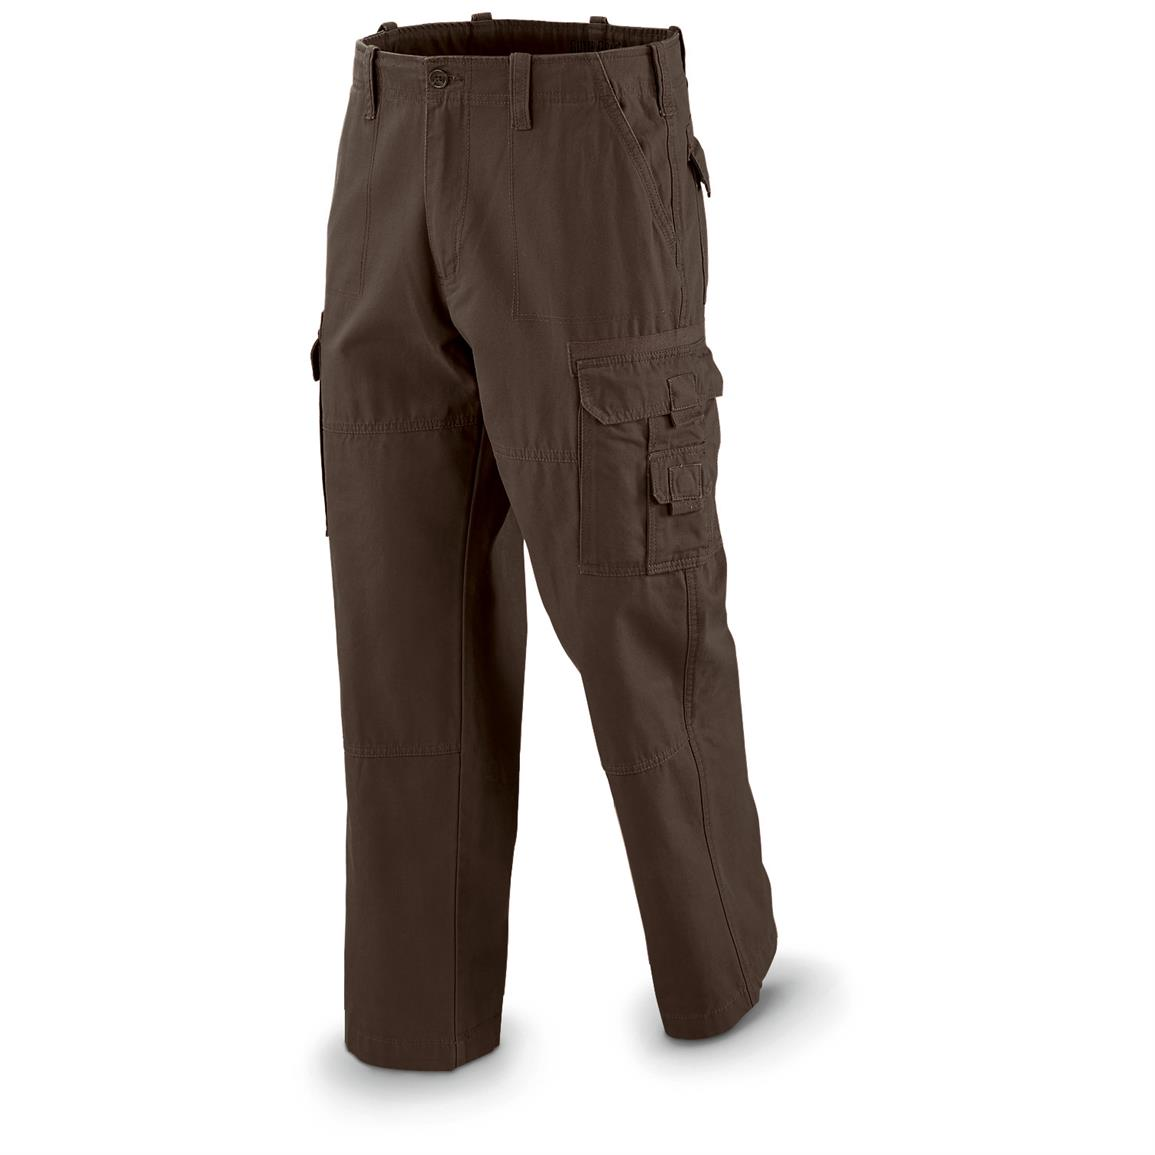 Guide Gear Men's Cargo Pants, Brown